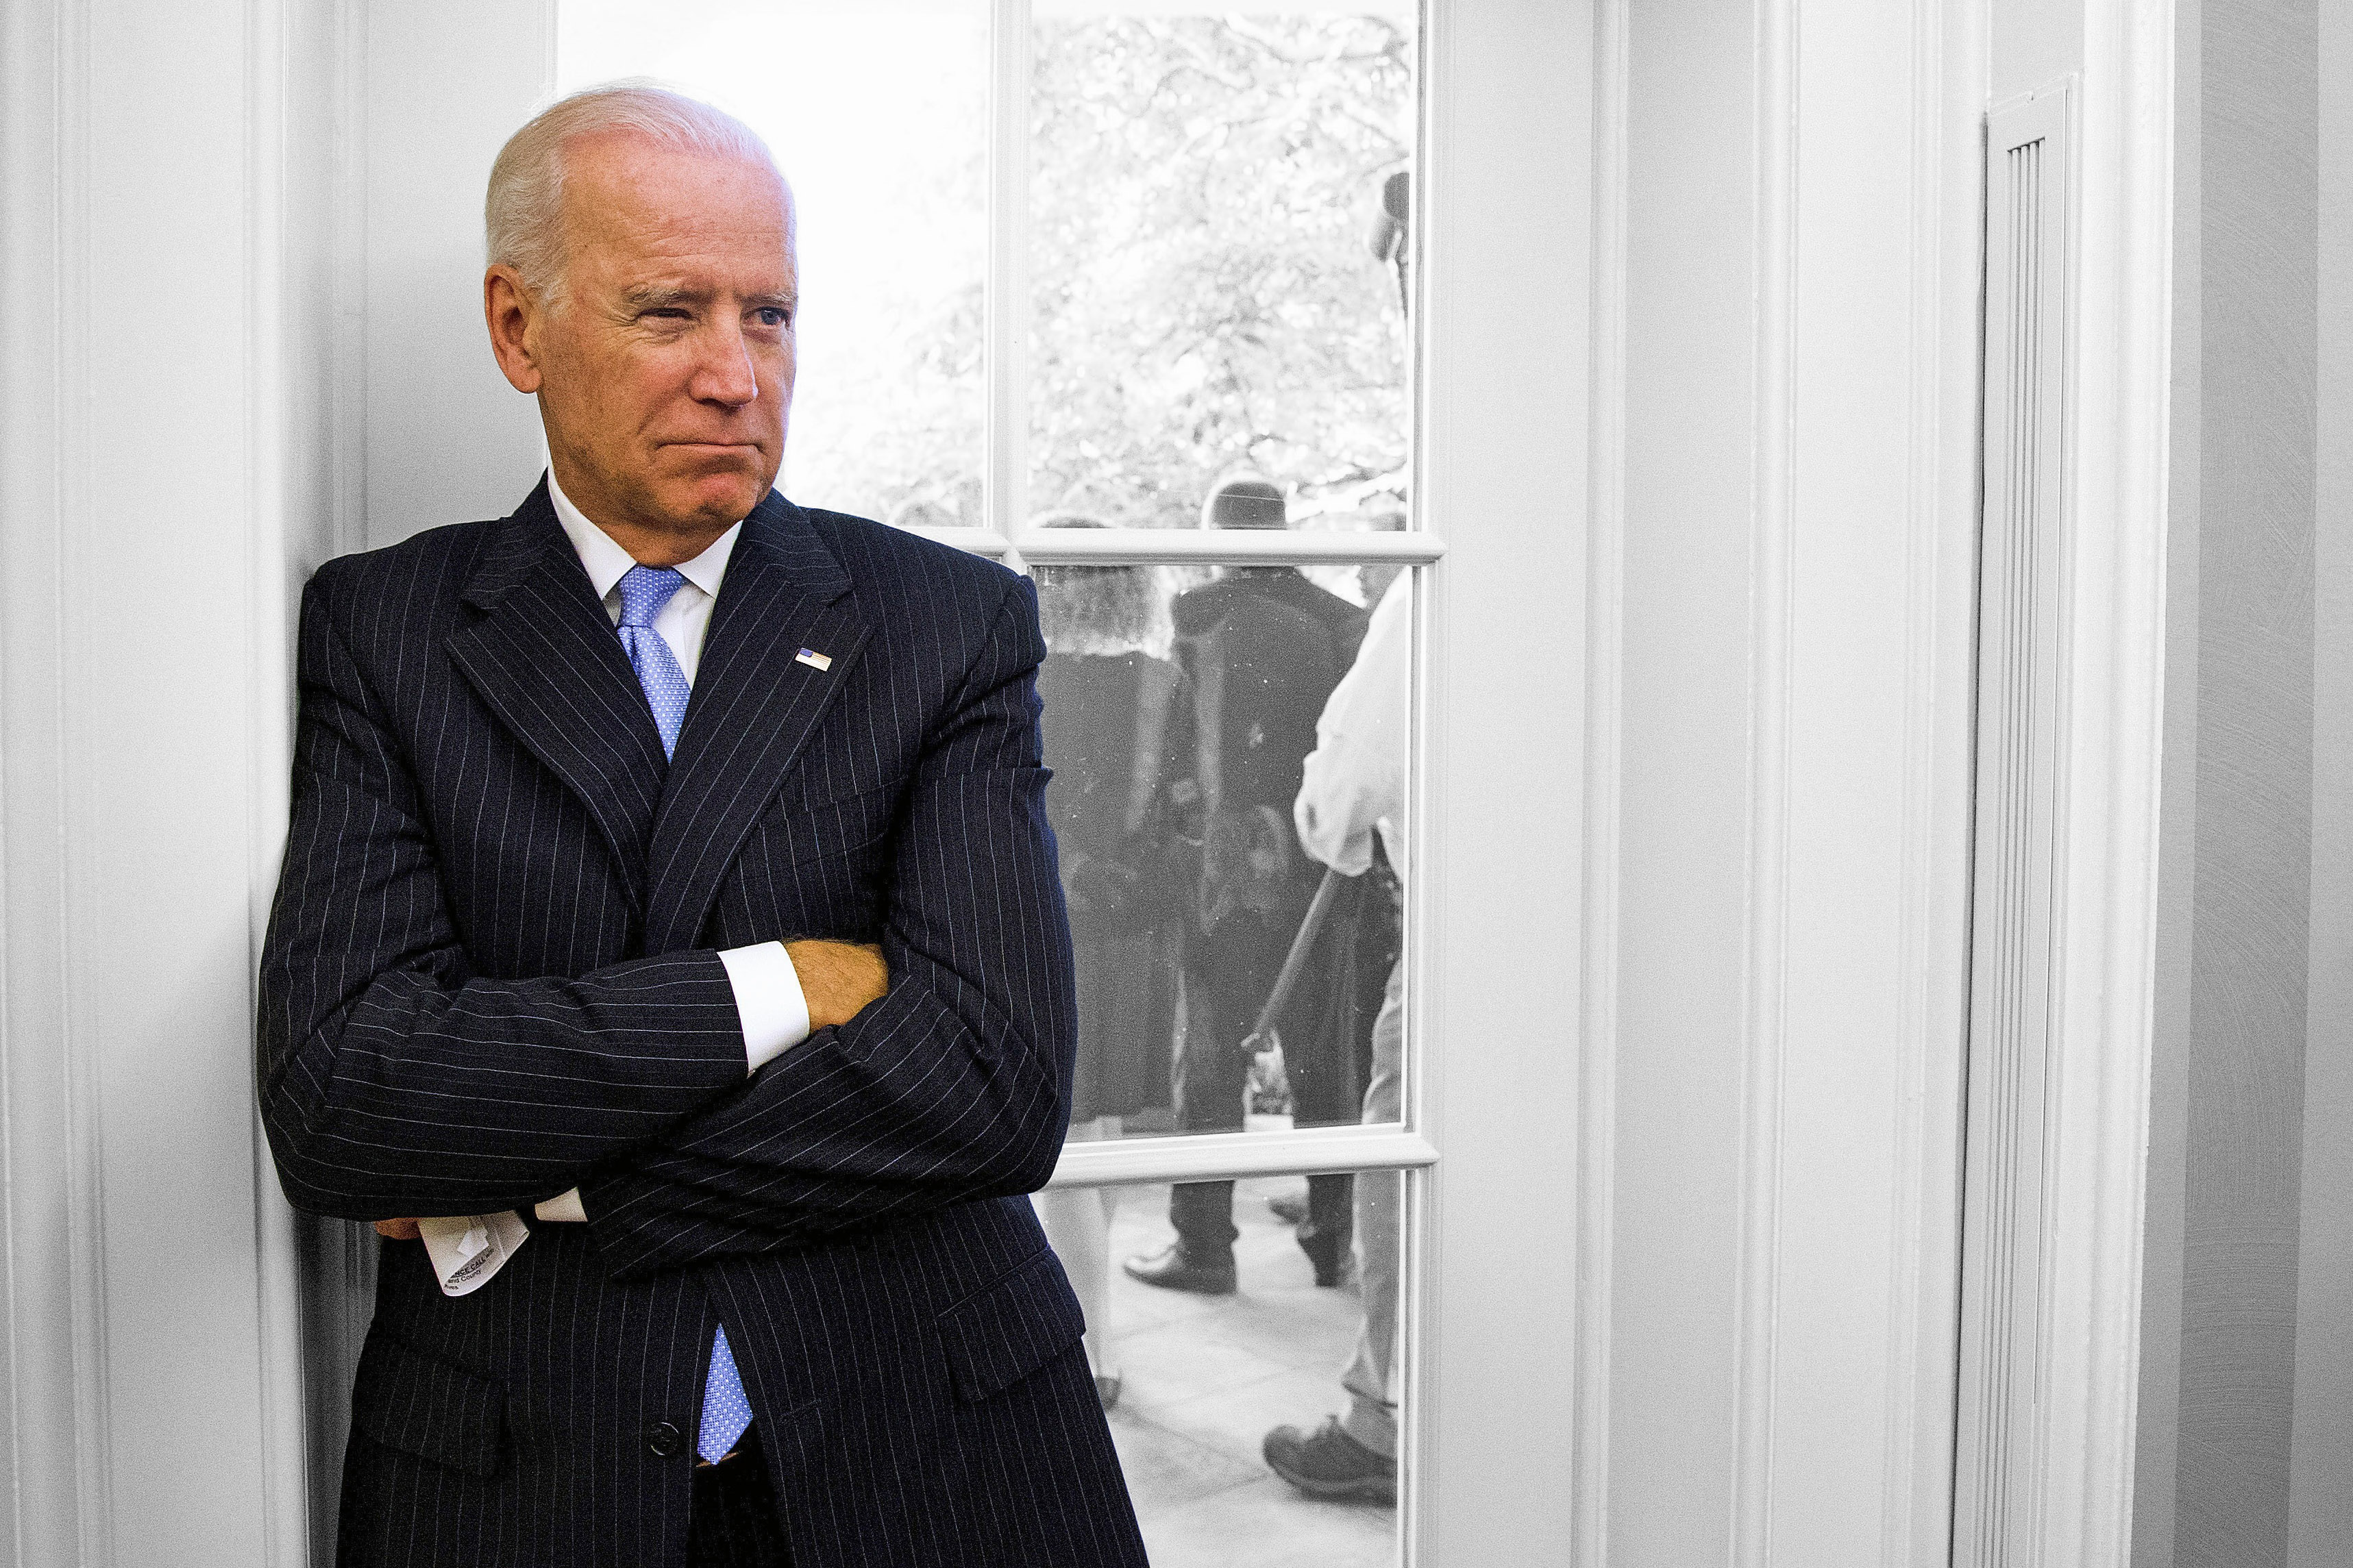 Joe Biden:                                Attention for the Vice President dropped dramatically once he said he's not running for president. But Biden made clear he's going out with a bang. He'll be pushing for things like cancer research and hitting blue-collar areas to drum up votes for Democratic candidates.